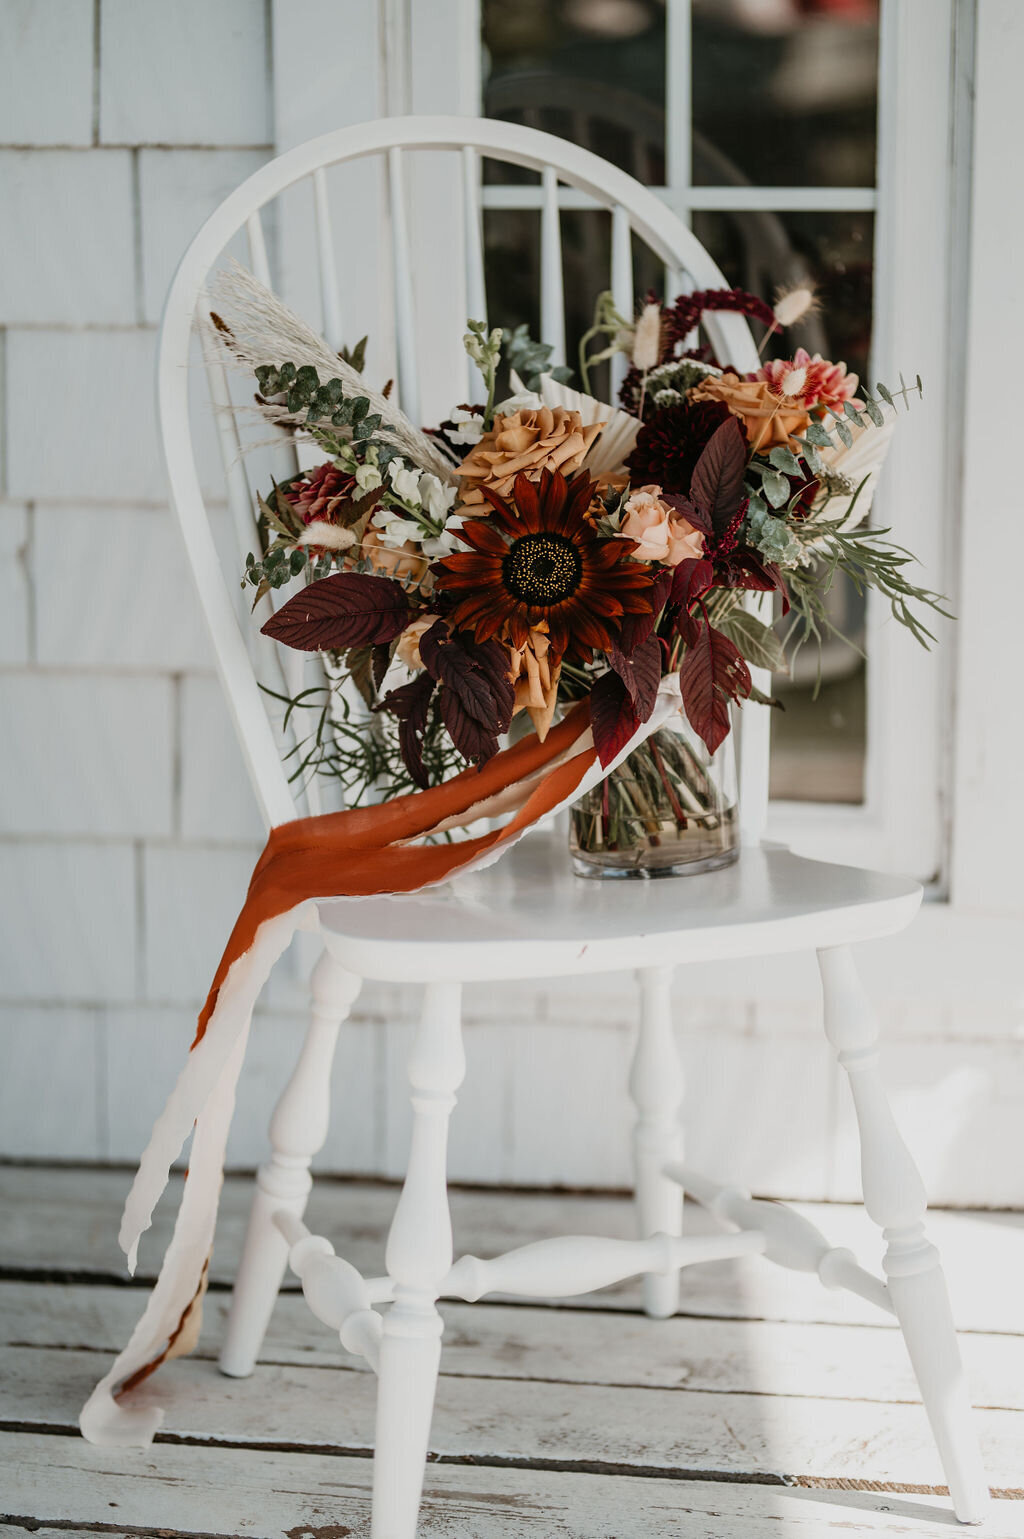 brides flower bouquet sitting on a white chair